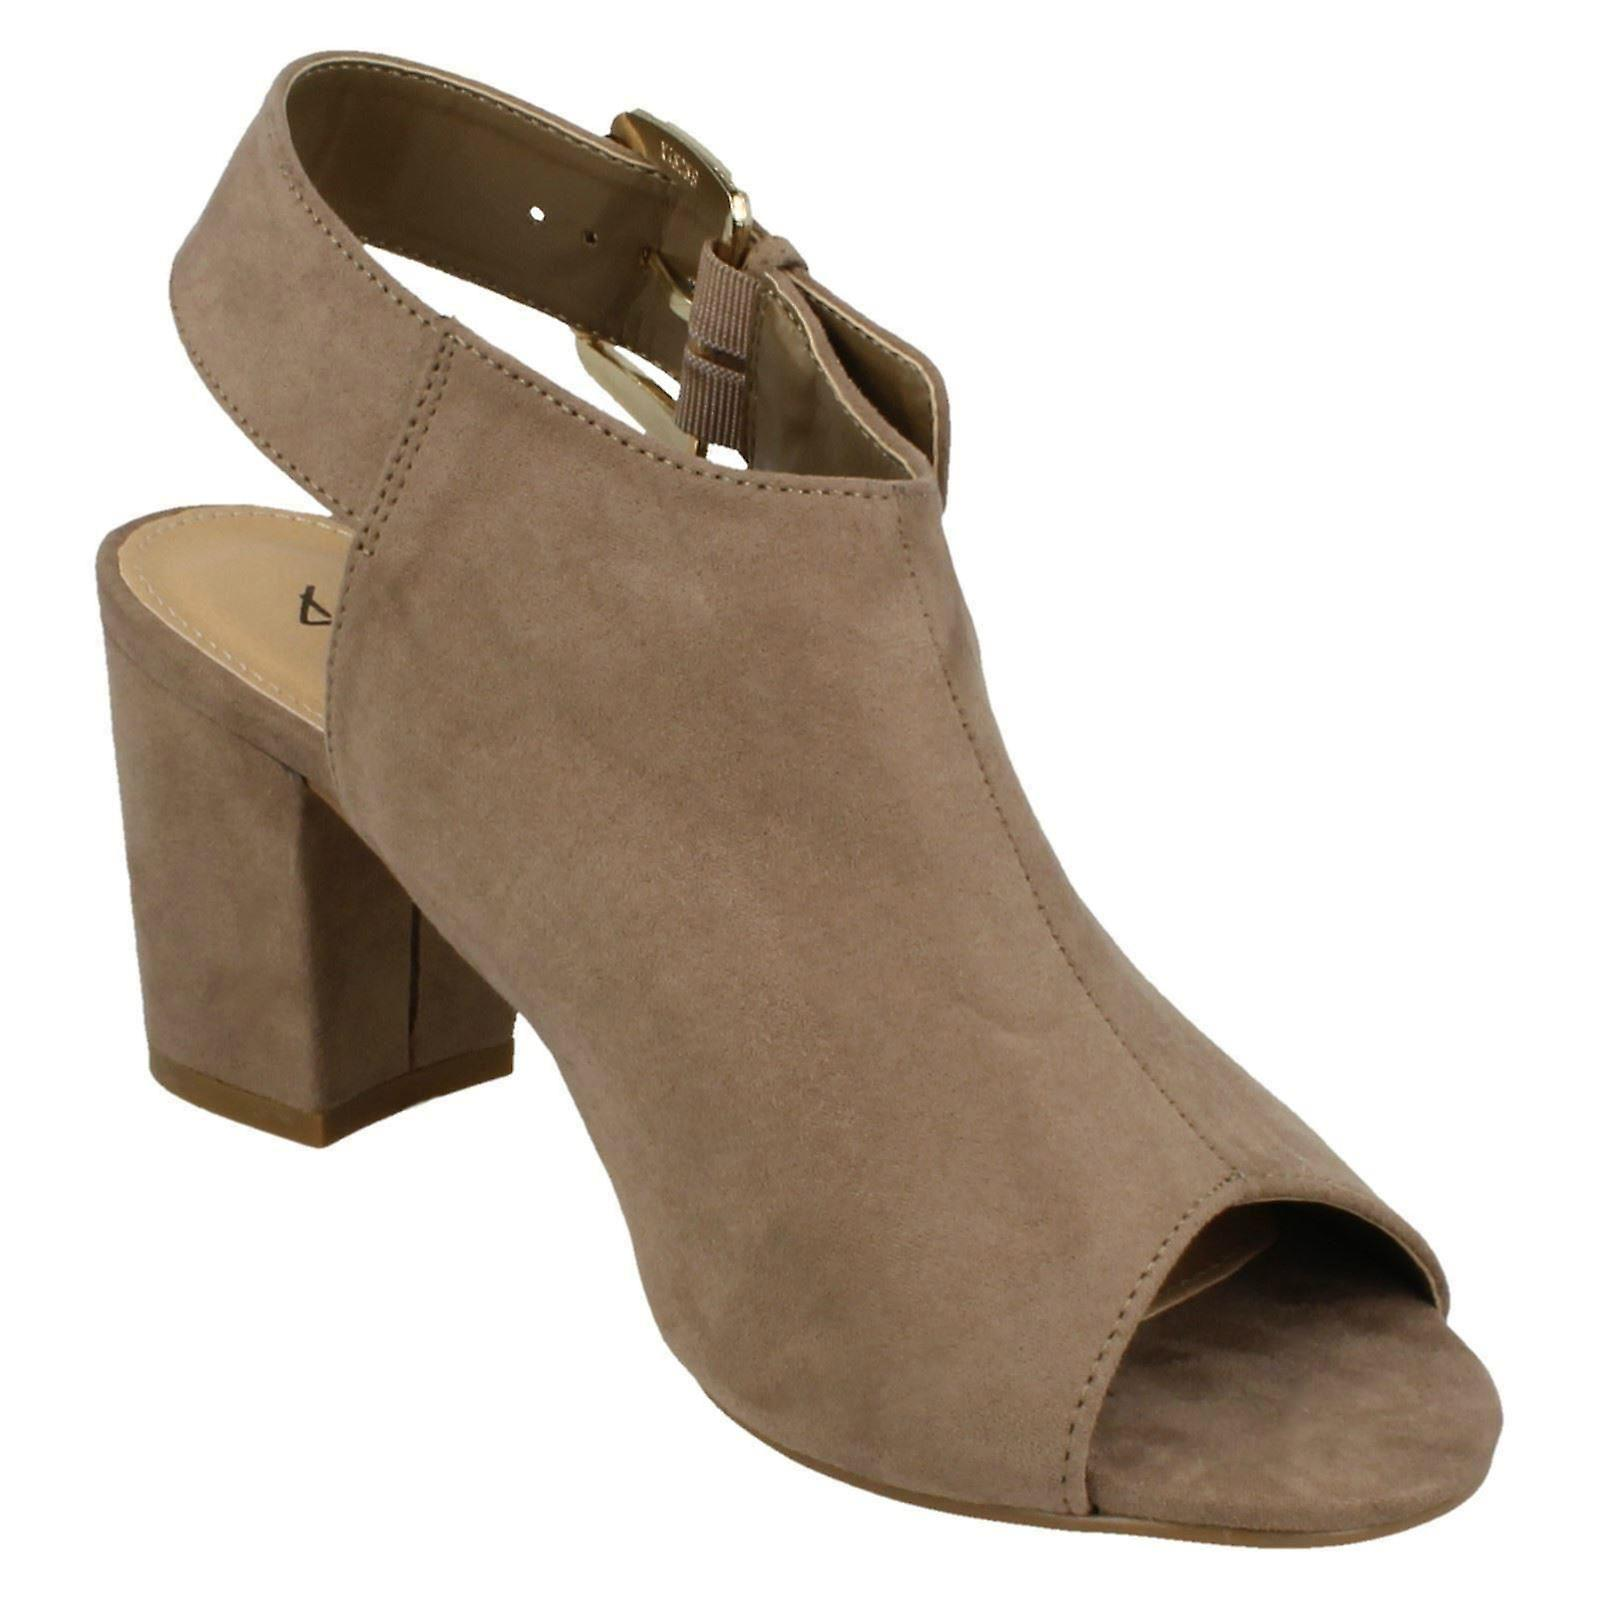 Ladies Anne Michelle Buckle Sling Strap Mules F10672